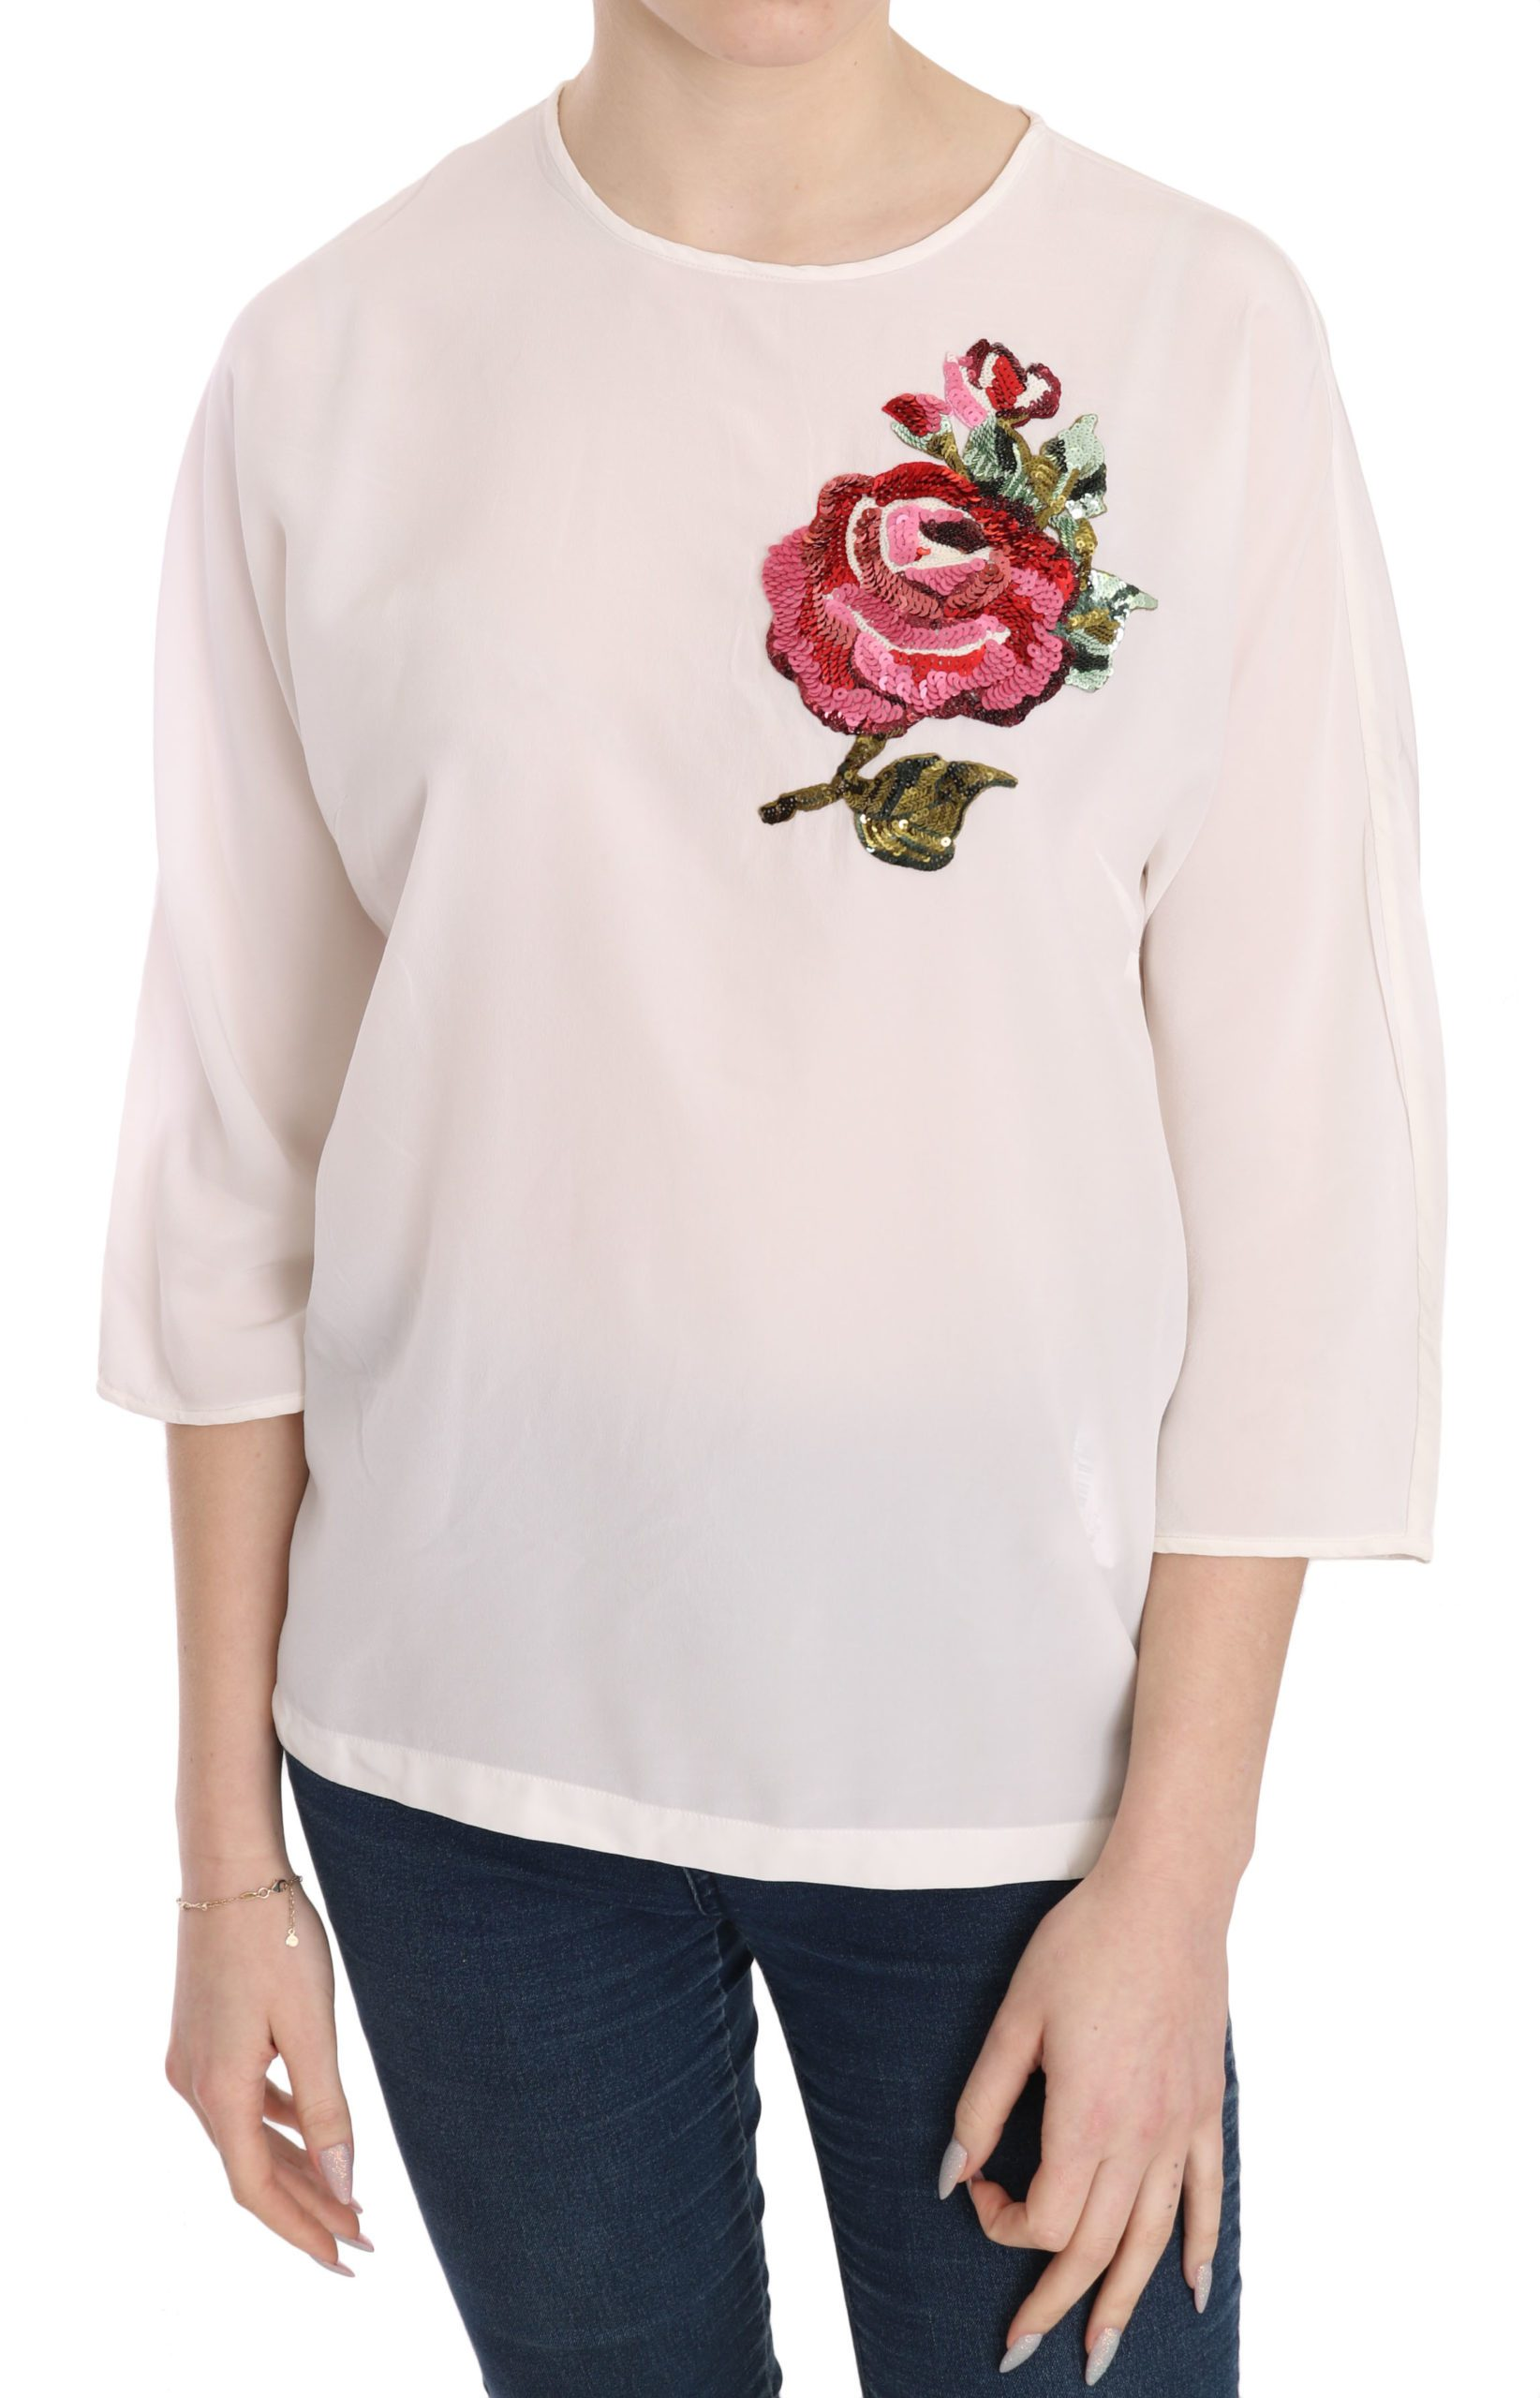 Dolce & Gabbana Women's Sequined Floral Top White TSH3653 - IT38 XS